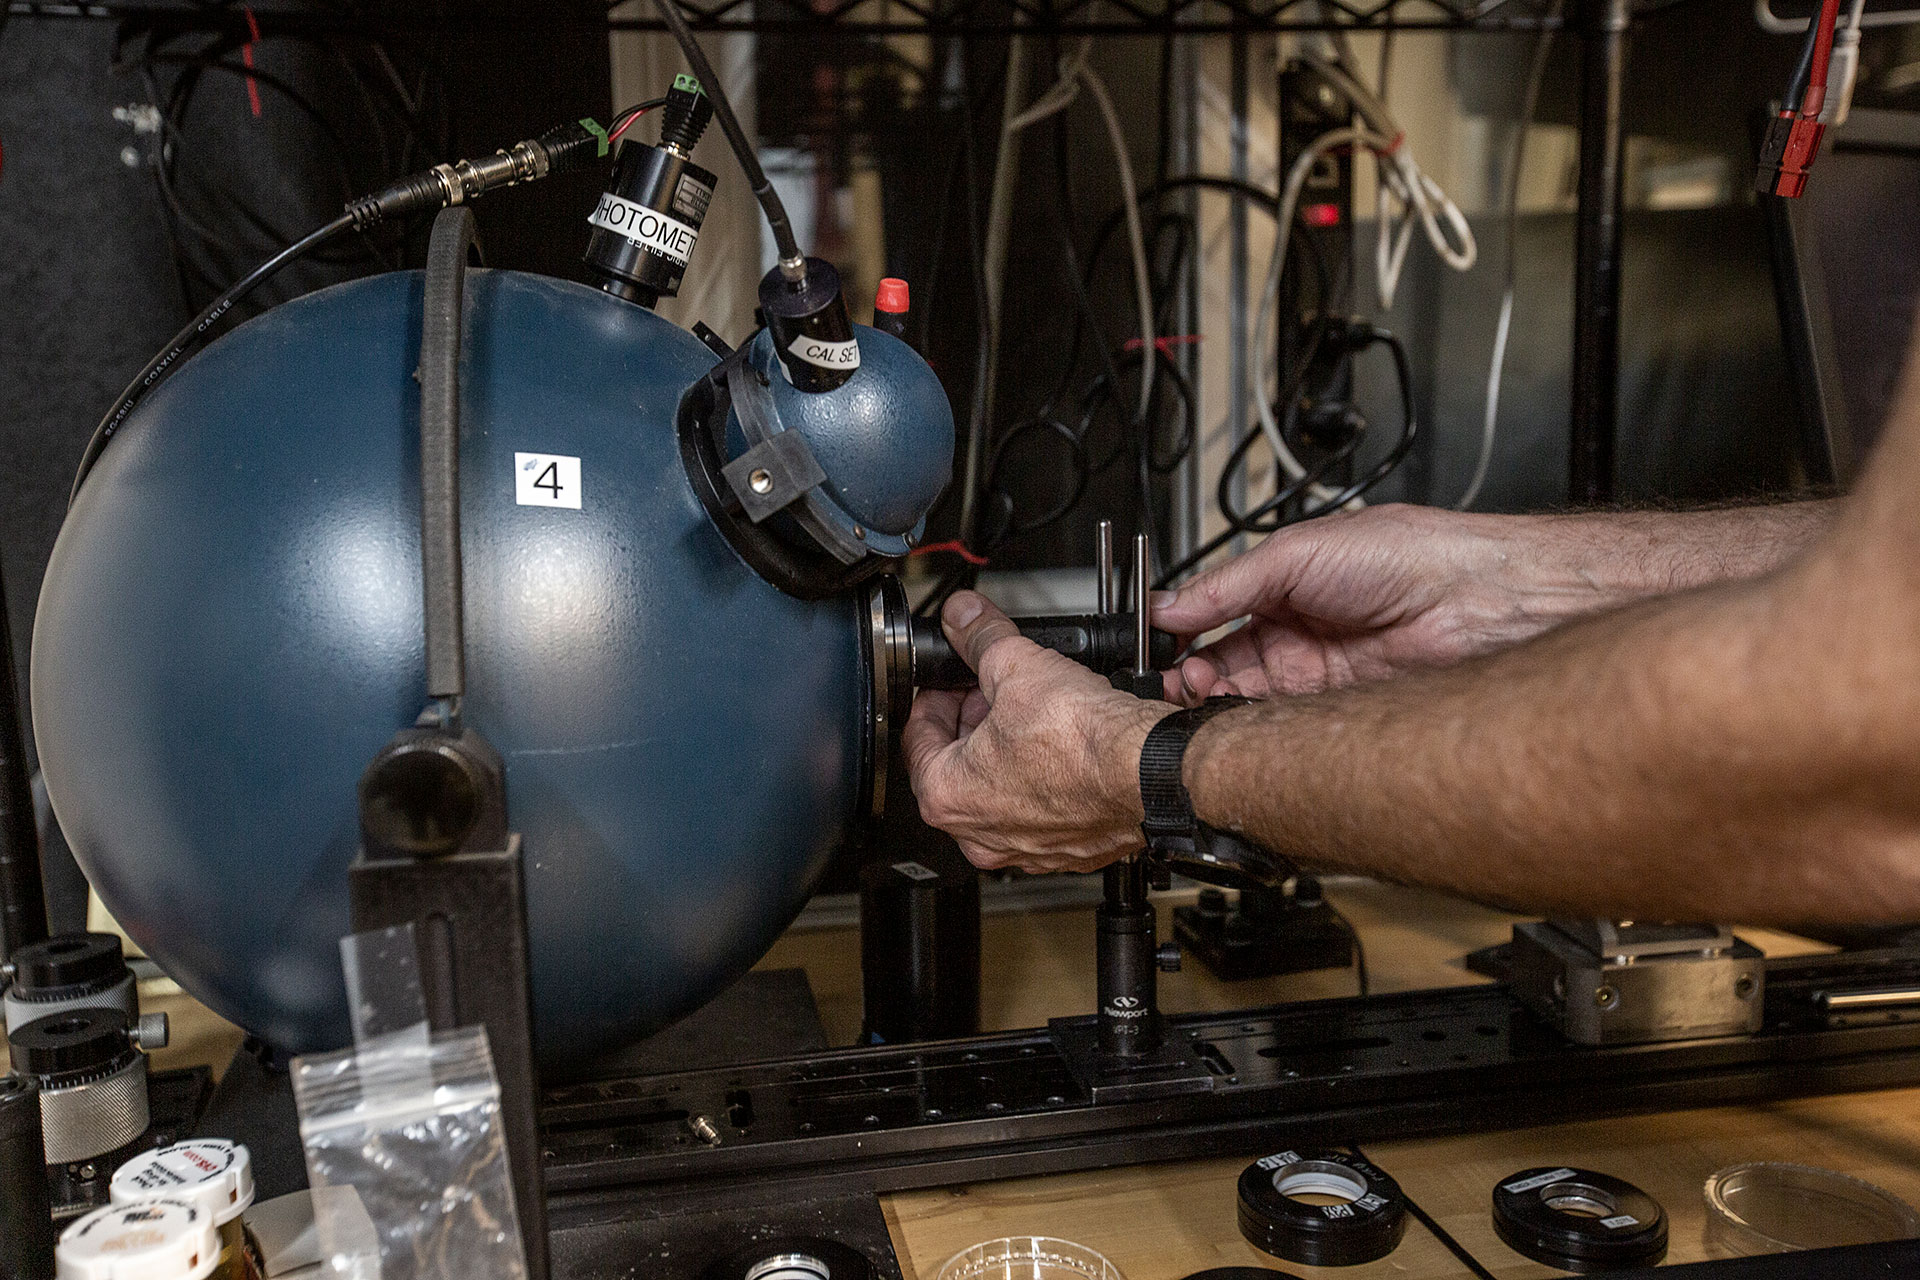 Testing in a lumisphere is part of SureFire's American manufacturing process